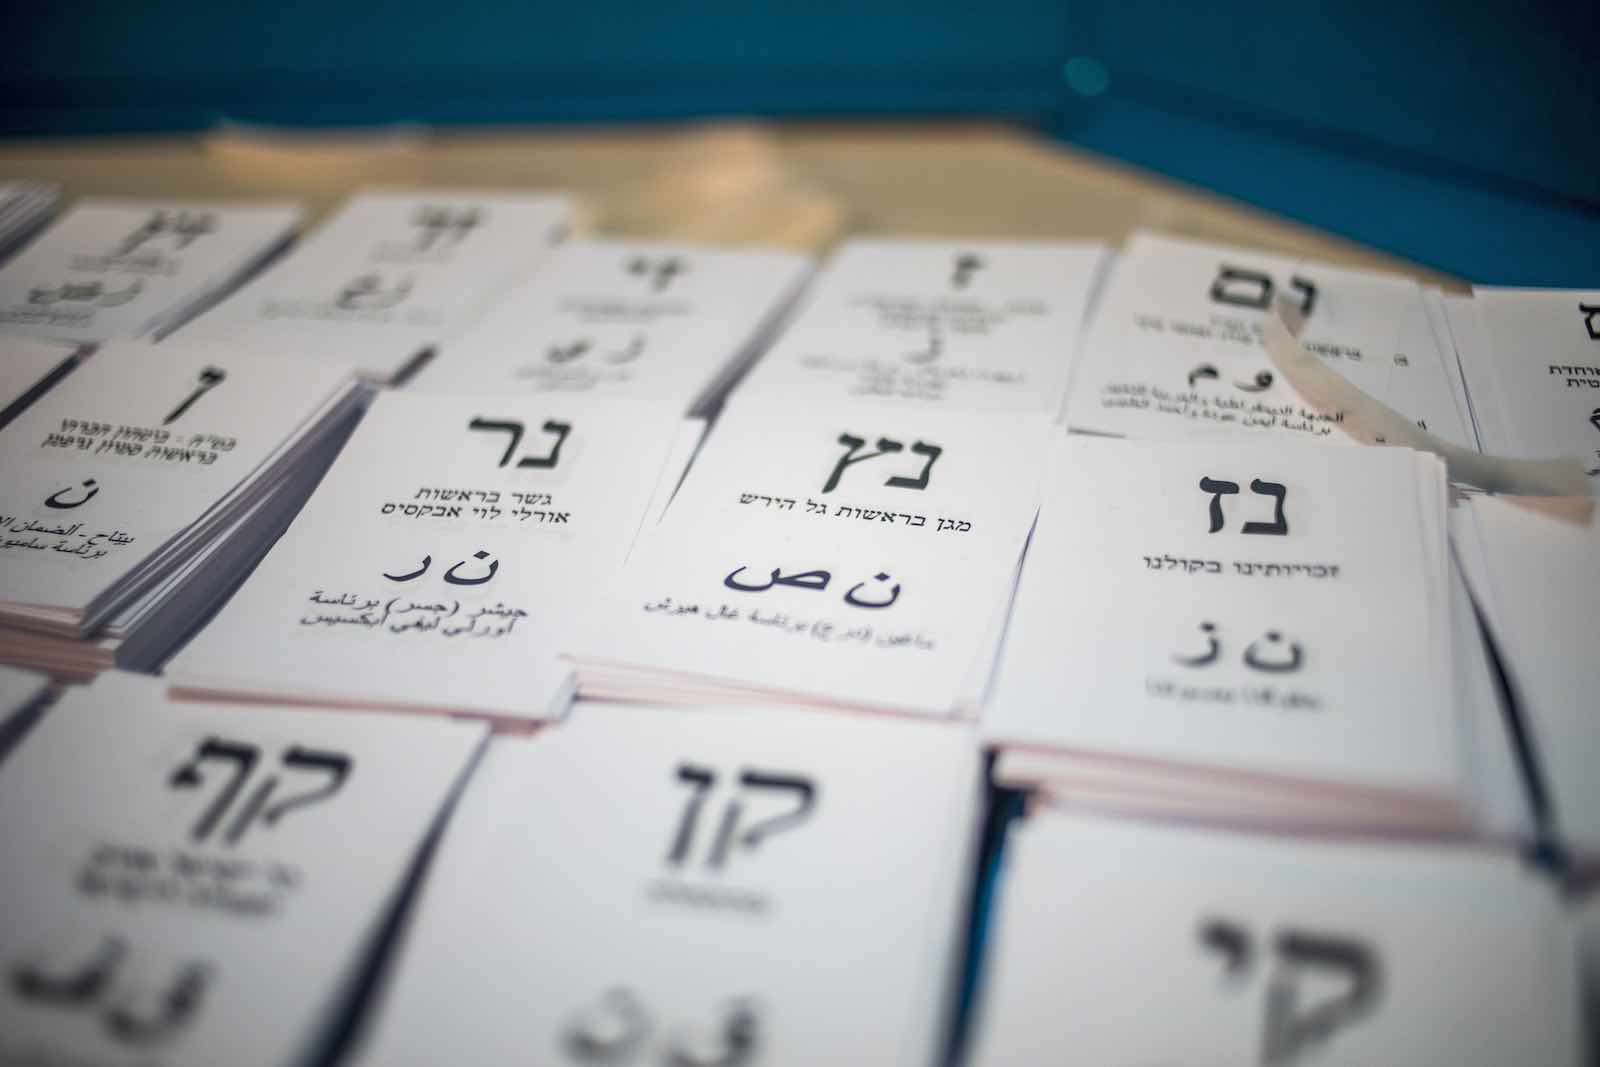 Ballots in the September 2019 elections (Photo: Bruno Thevenin via Getty Images)